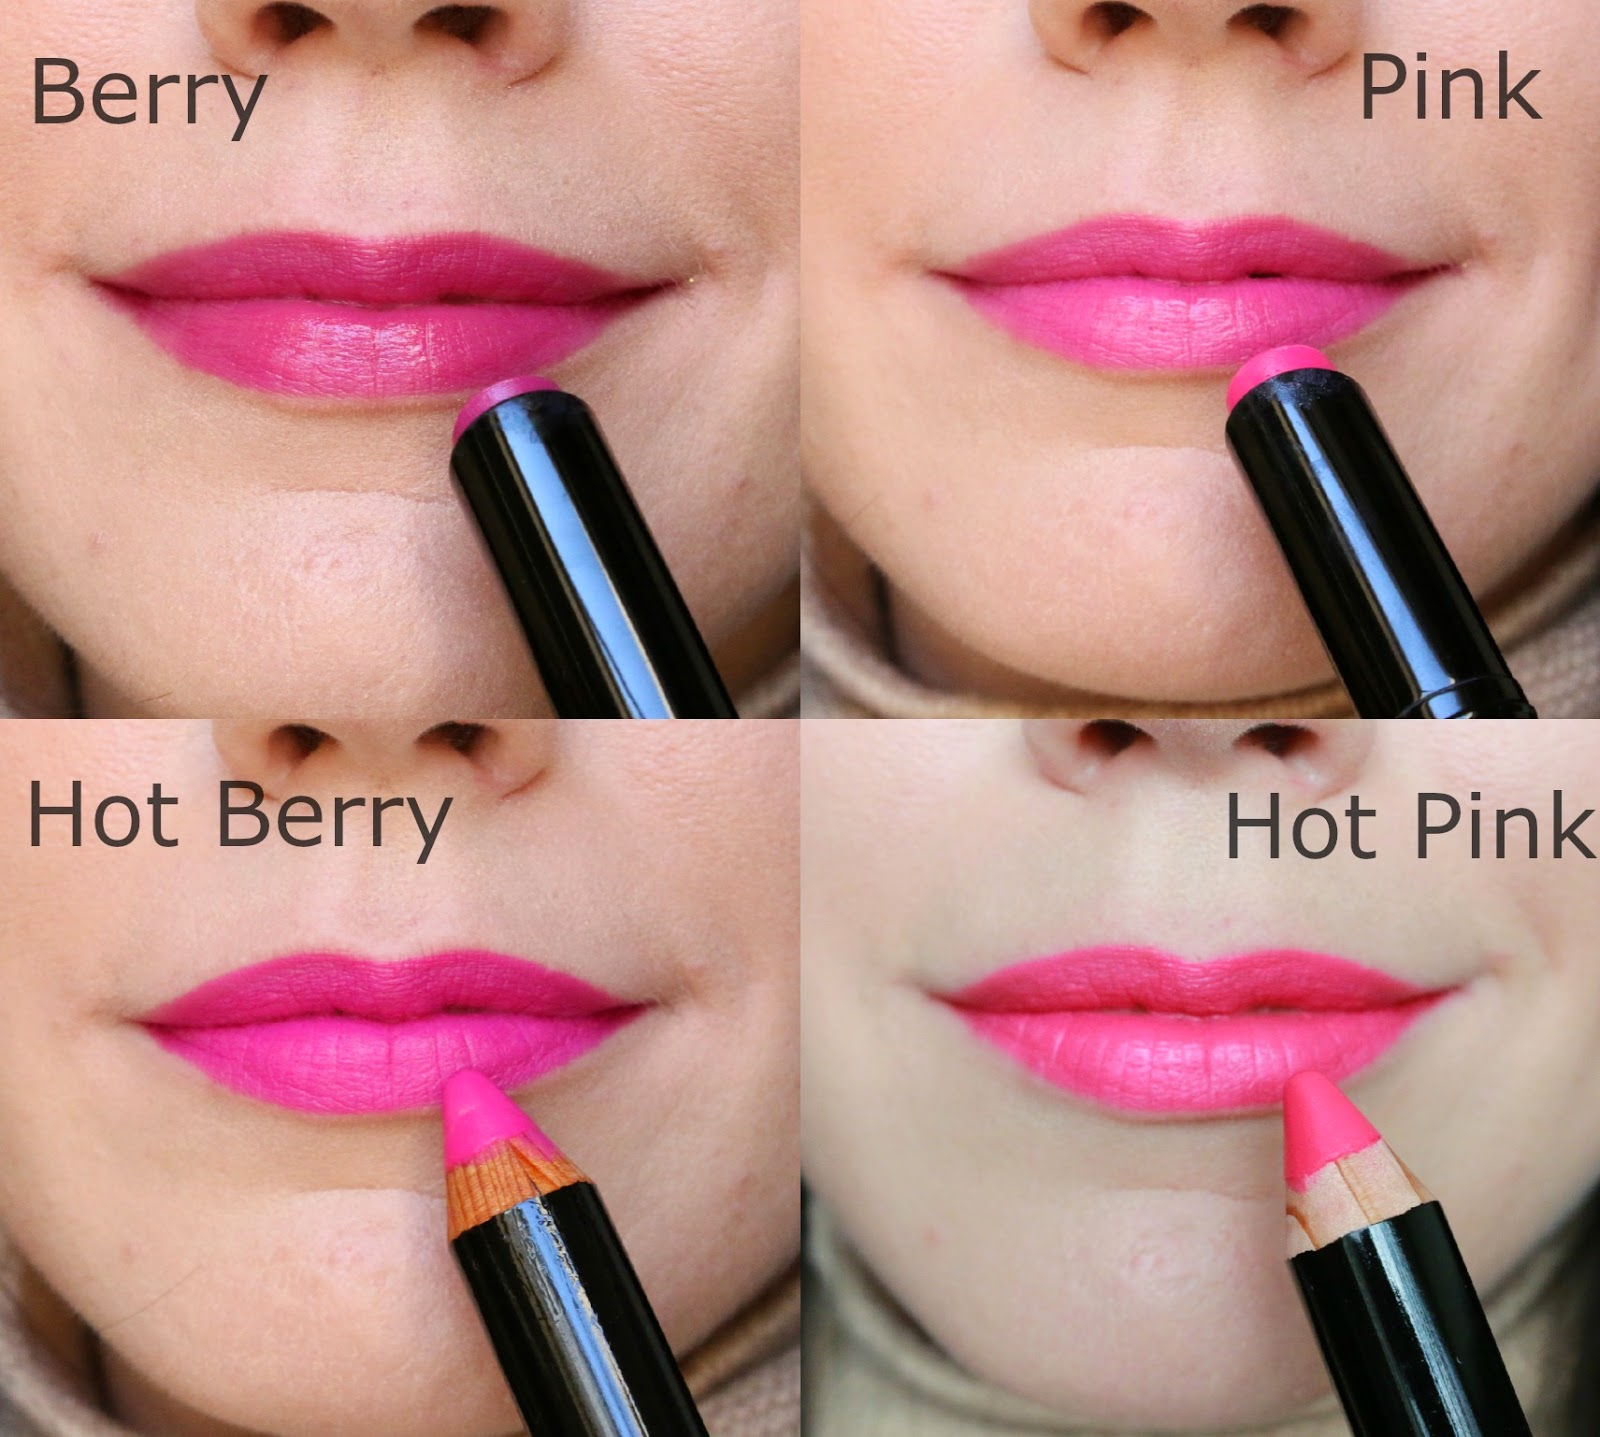 Bobbi Brown Hot Collection lip swatches for fair skin